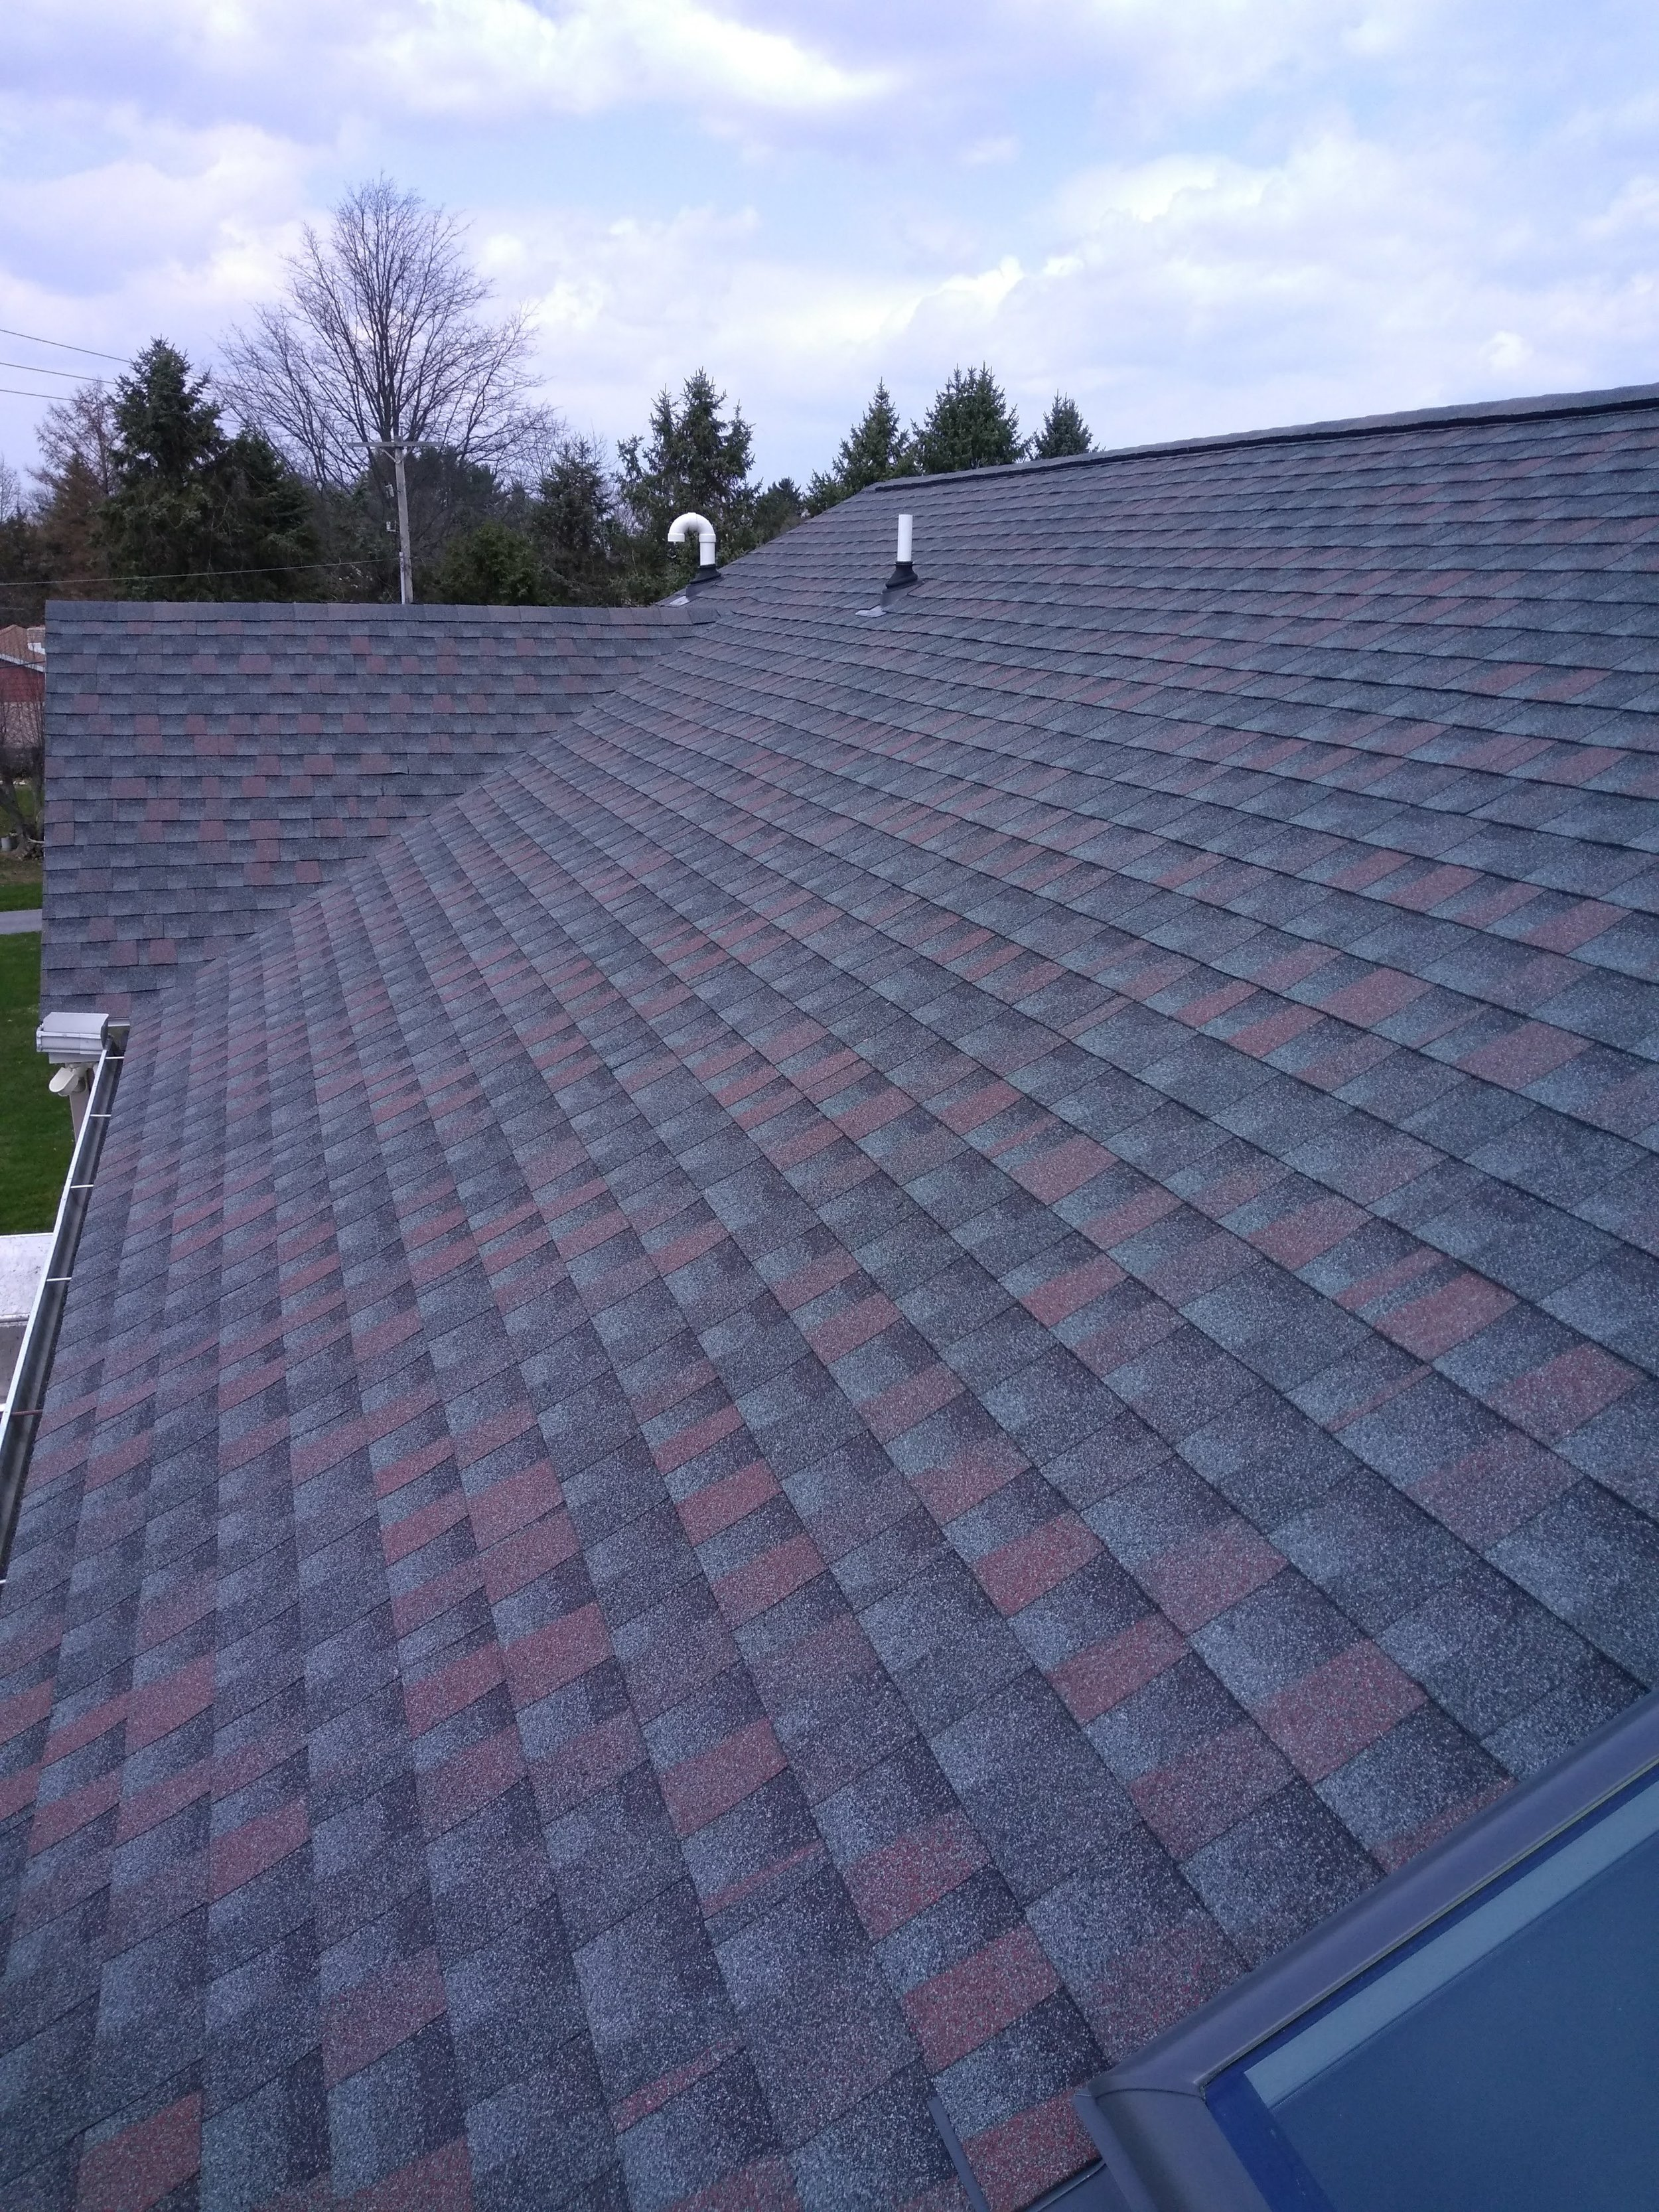 A new roof with GAF Timberline HD shingles. The color is Williamsburg Slate.